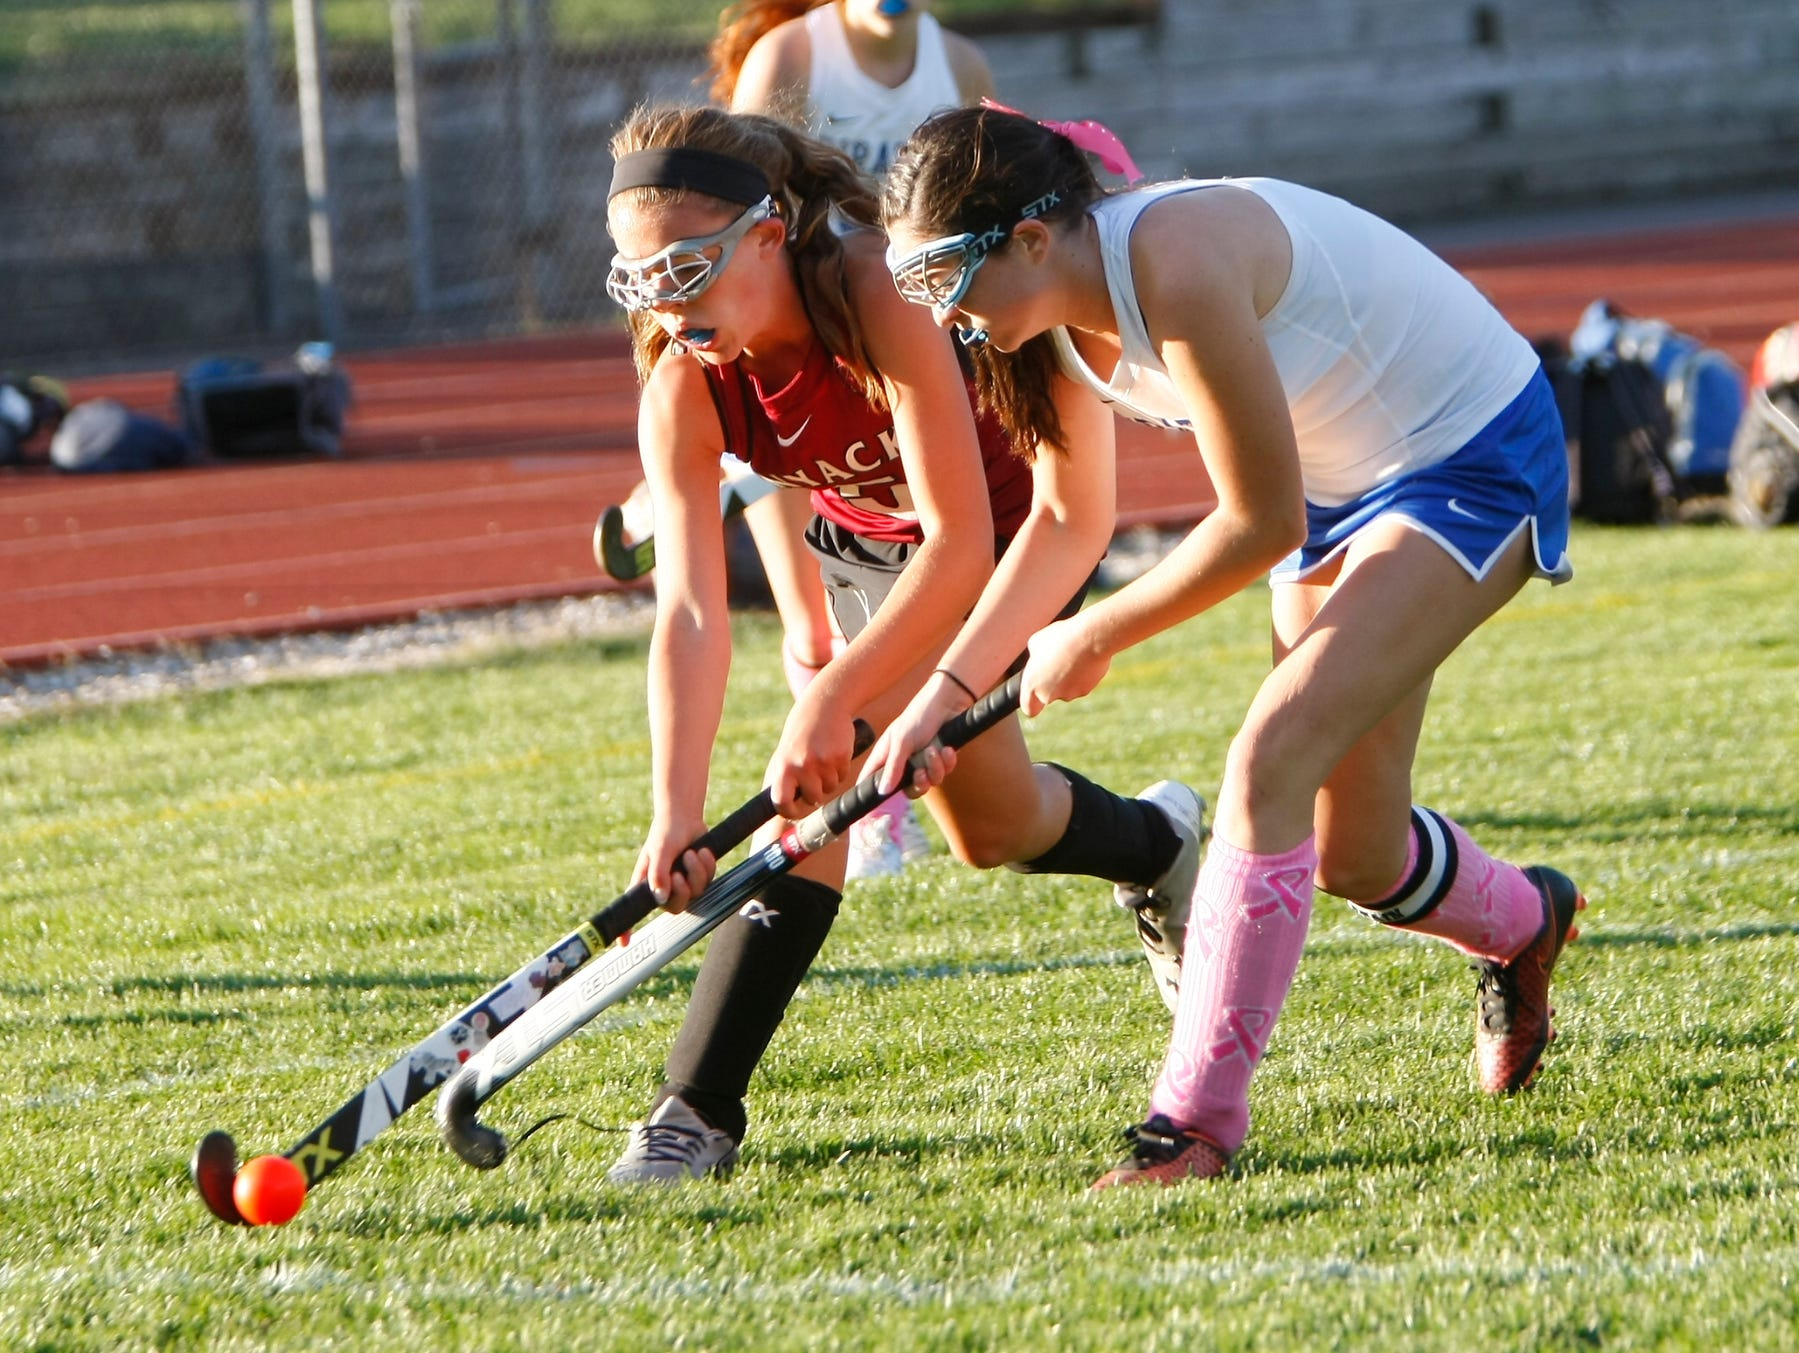 Nyack's Emily Connelly (5), left, and Pearl River's Kelly York (3) battle for possession during a varsity field hockey game at Pearl River High School on Friday, Oct. 16, 2015.